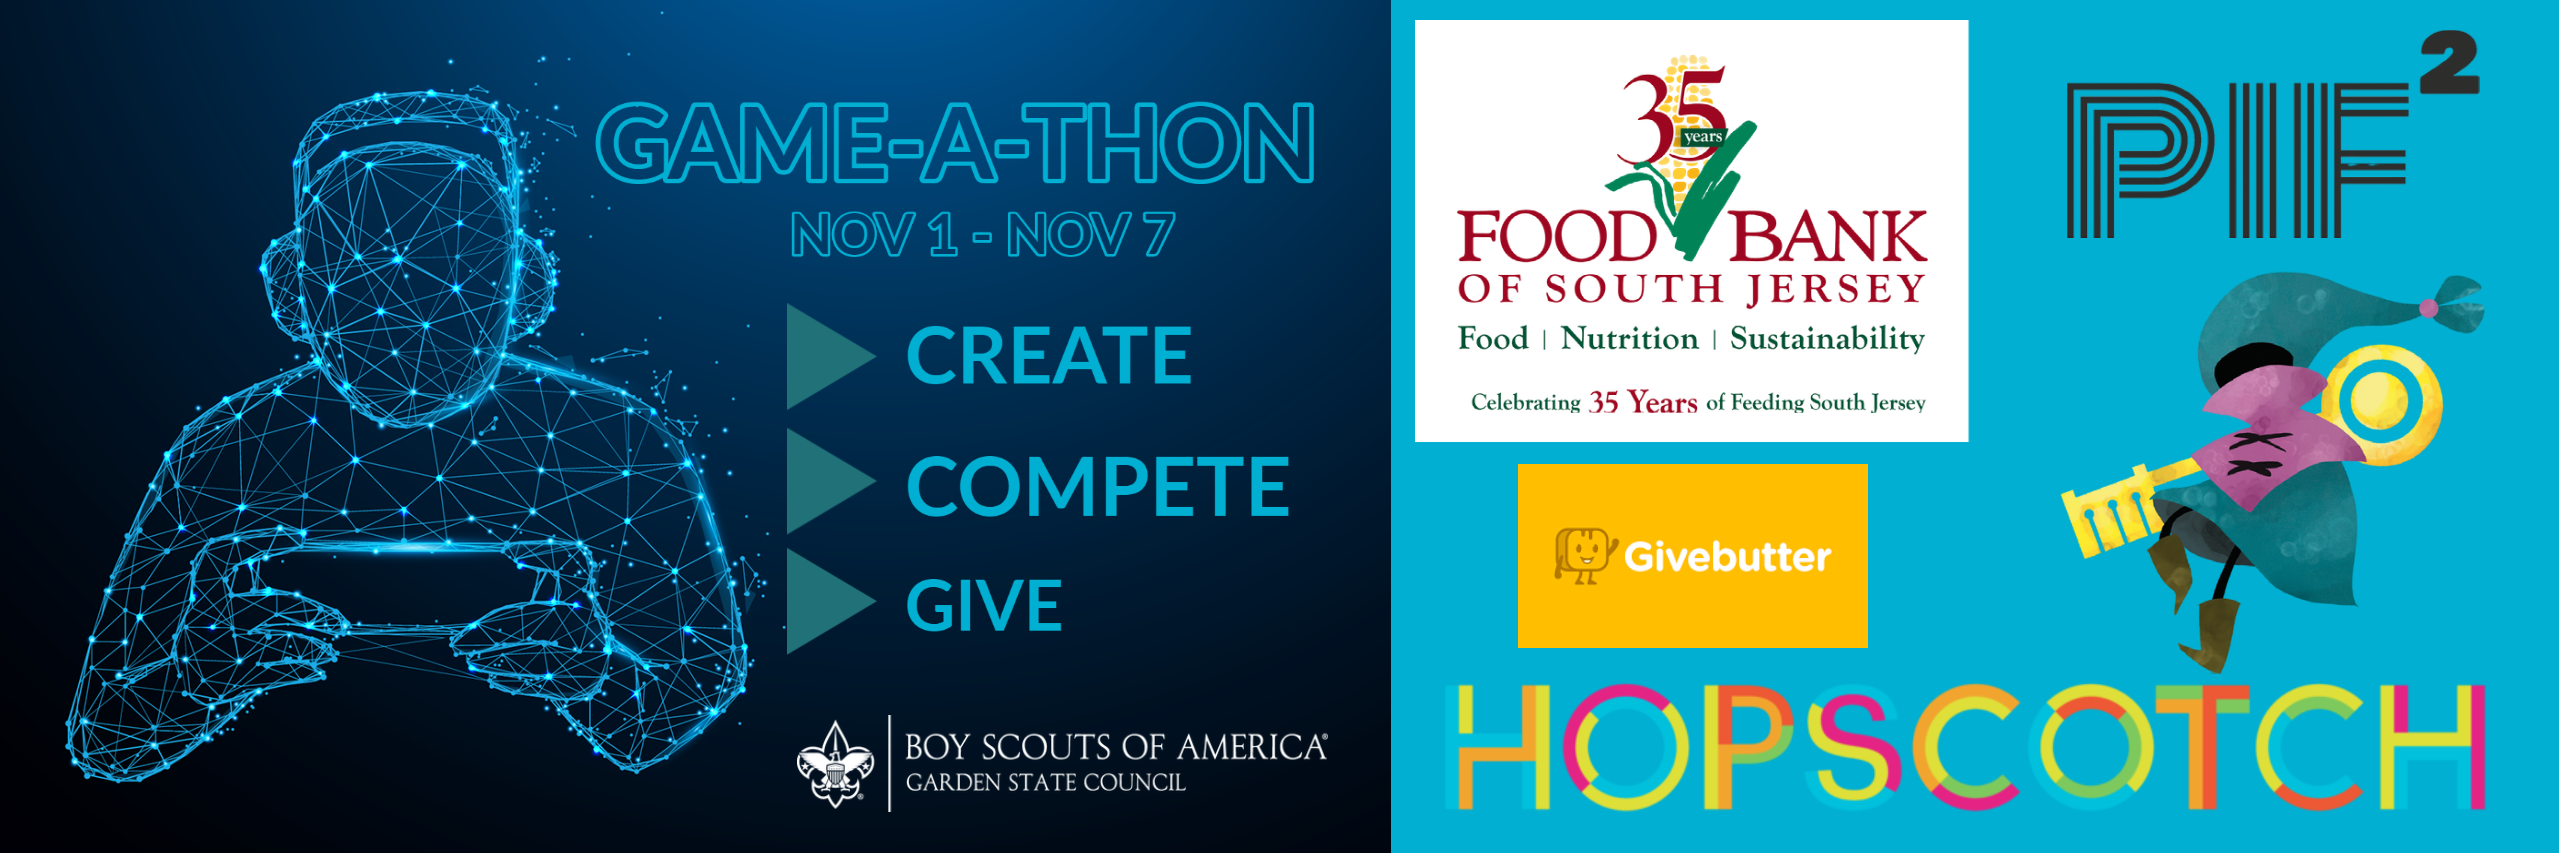 Game-A-Thon to fight hunger, Nov 1 to Nov 7, brought to you by Garden State Council, BSA, and PiF Squared to benefit the Food Bank of SJ.